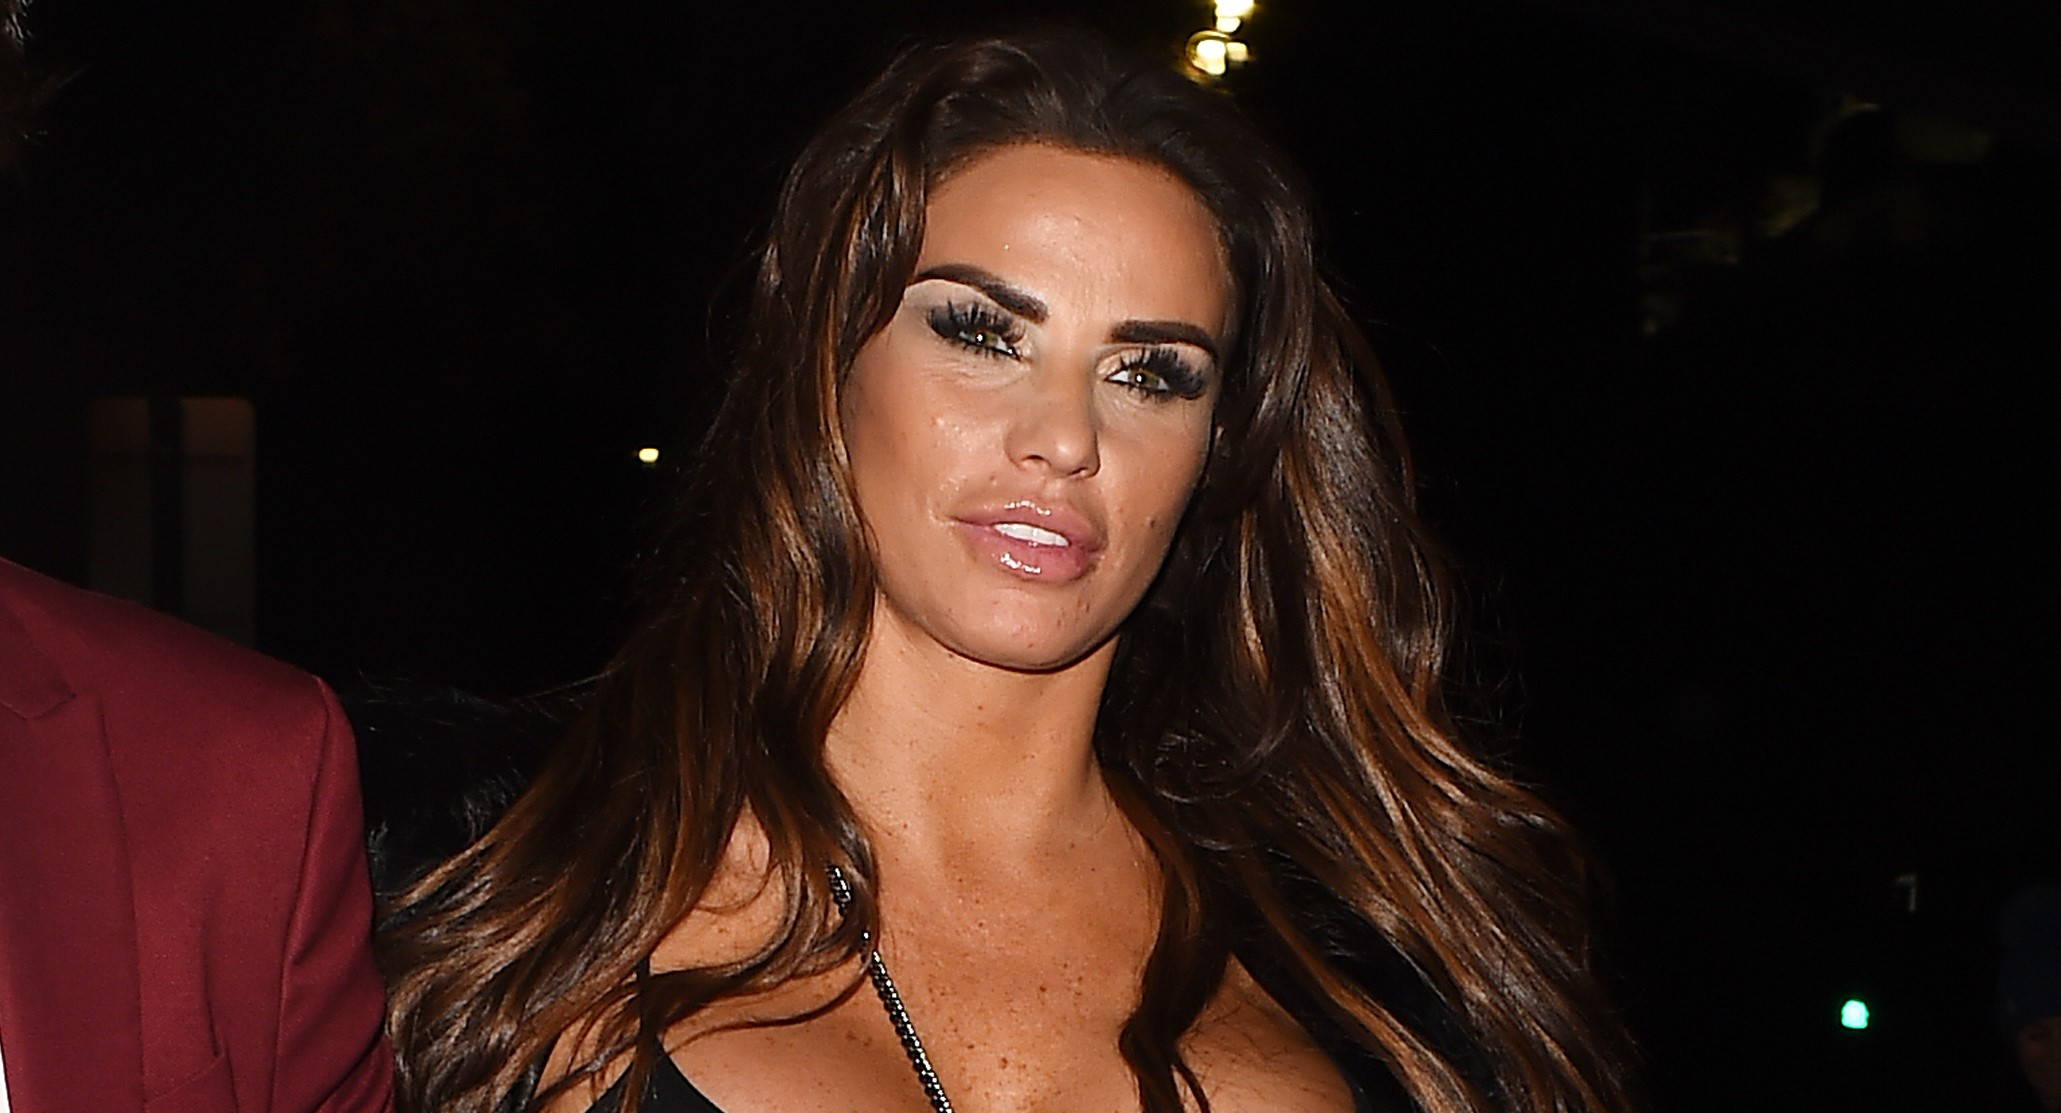 Katie Price forced to deny reports she's set to become a 'high-class stripper'